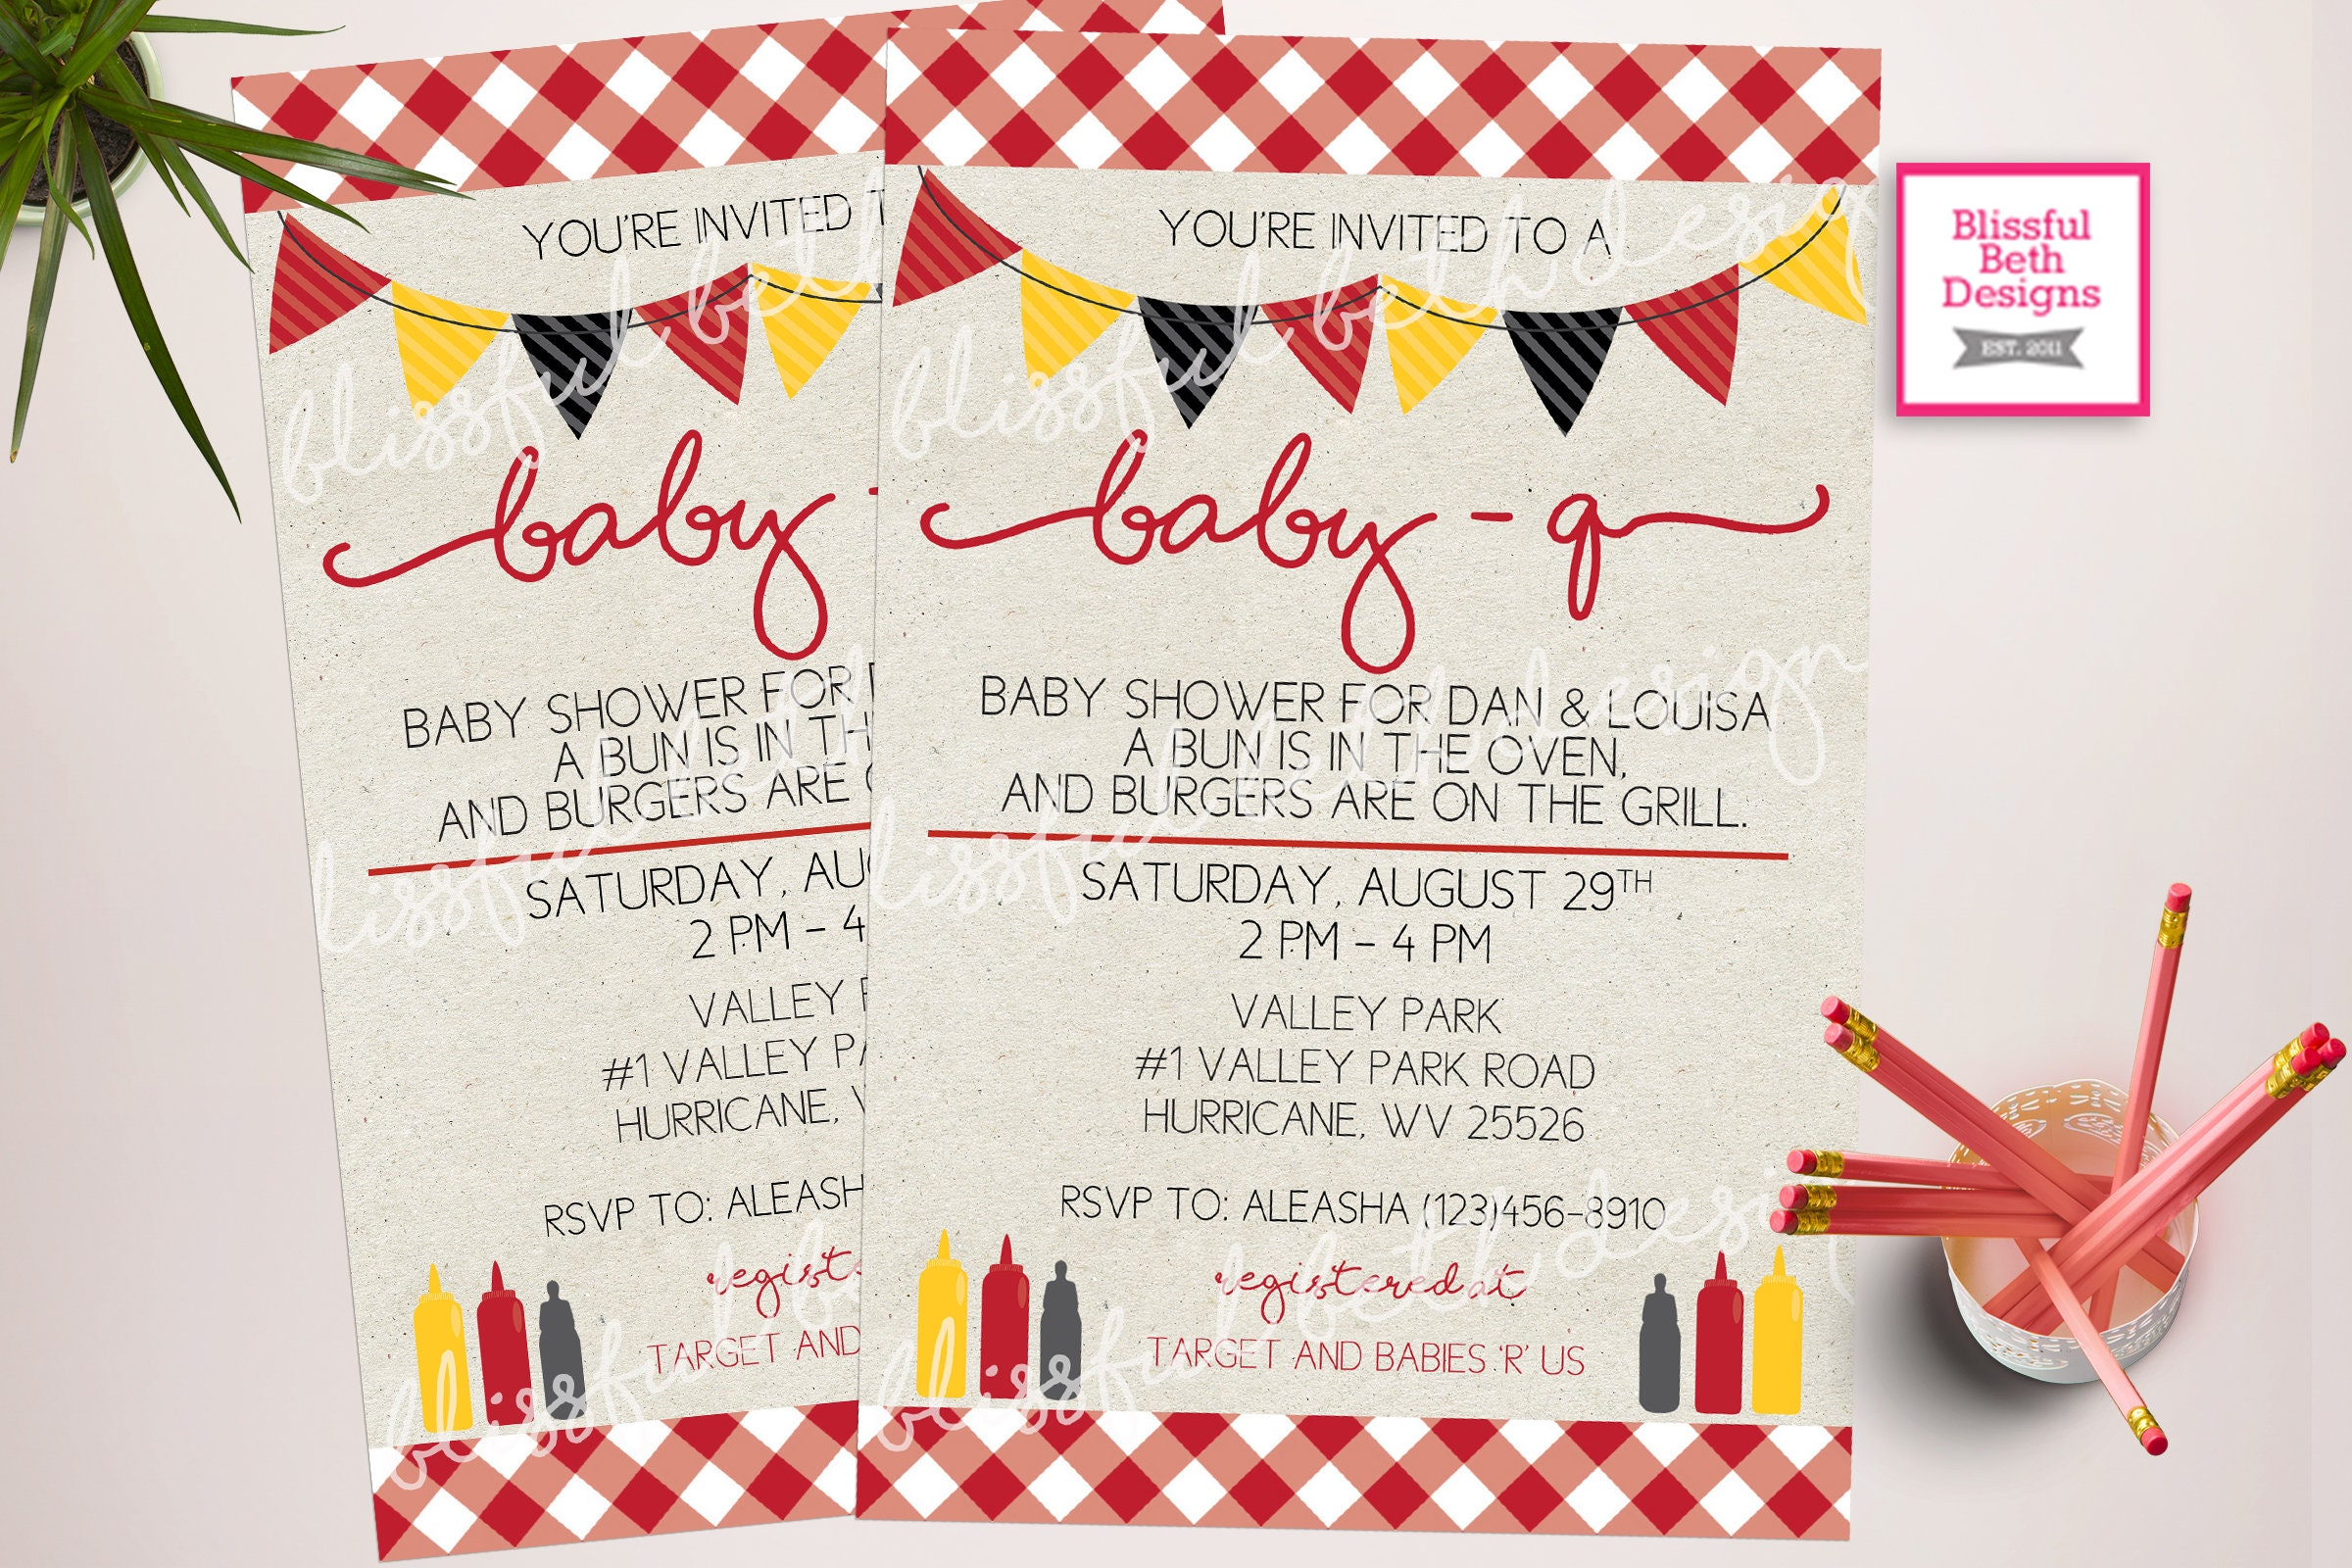 baby q shower invitation baby bbq shower bbq shower backyard bbq invitation baby q invite barbecue invitation baby q invitation